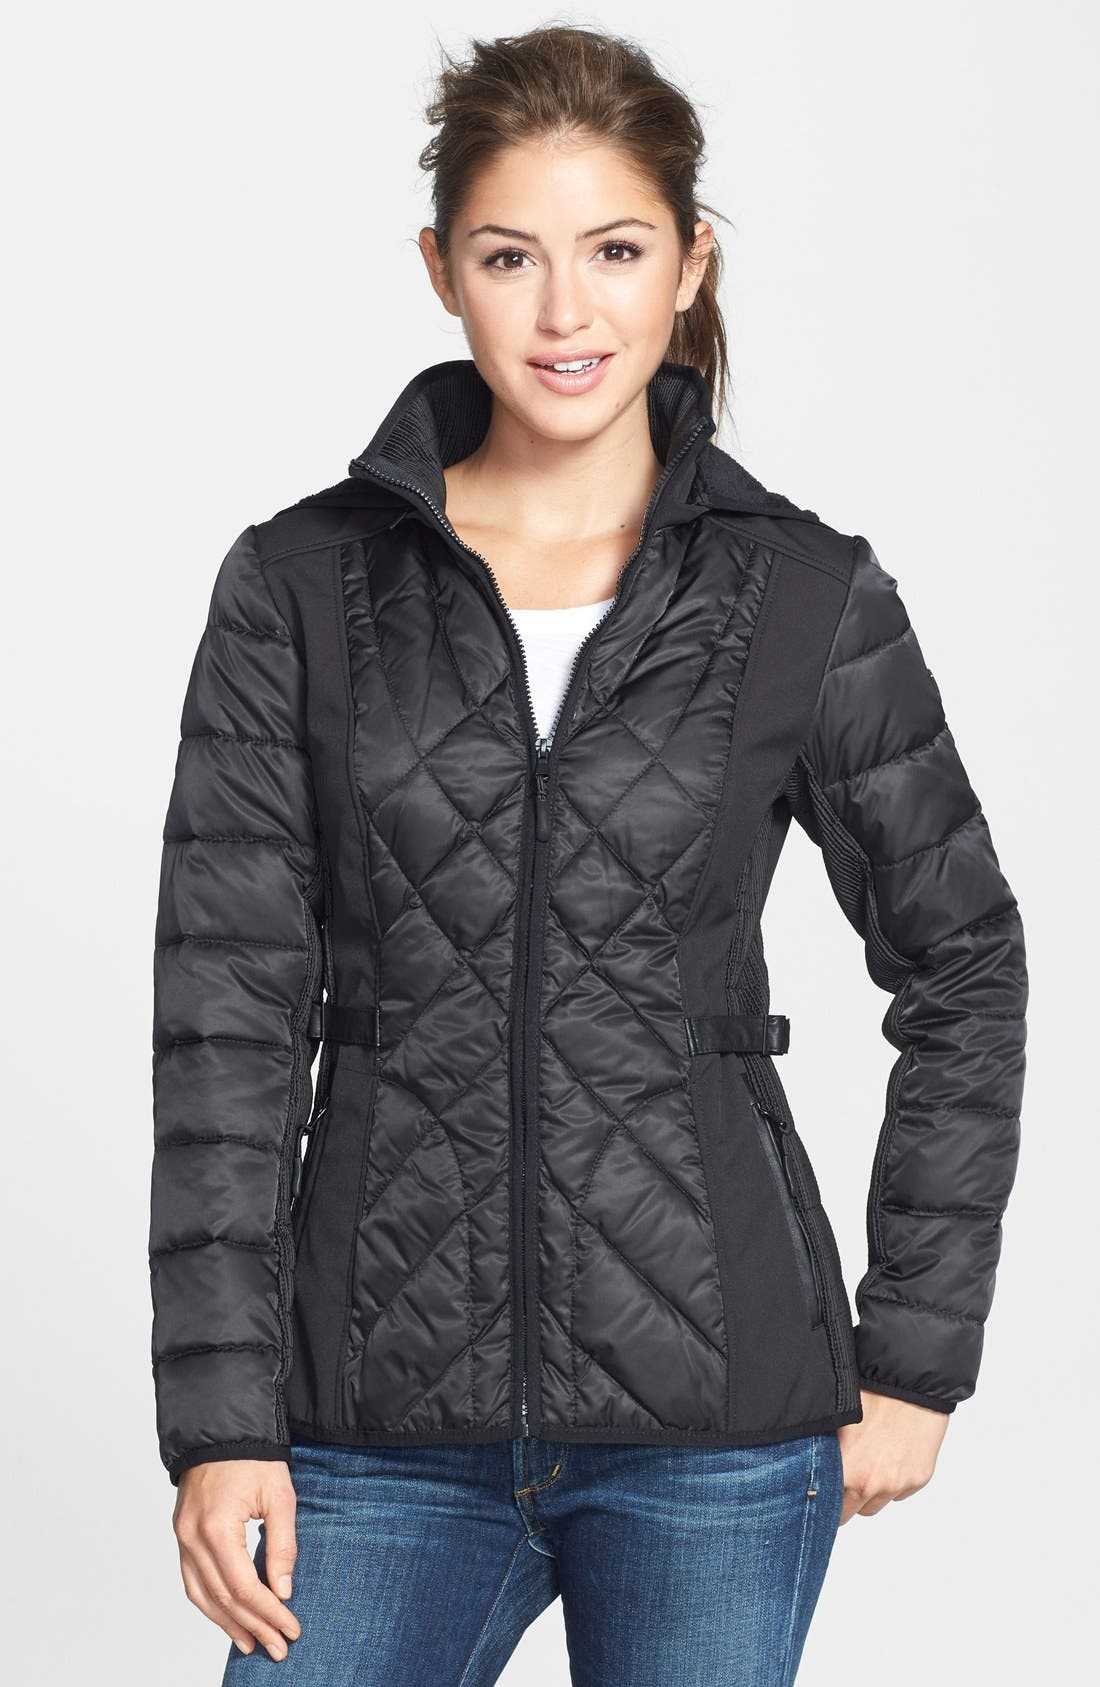 Main Image - 1 Madison Mixed Media Soft Shell Jacket with Removable Hood (Online Only)